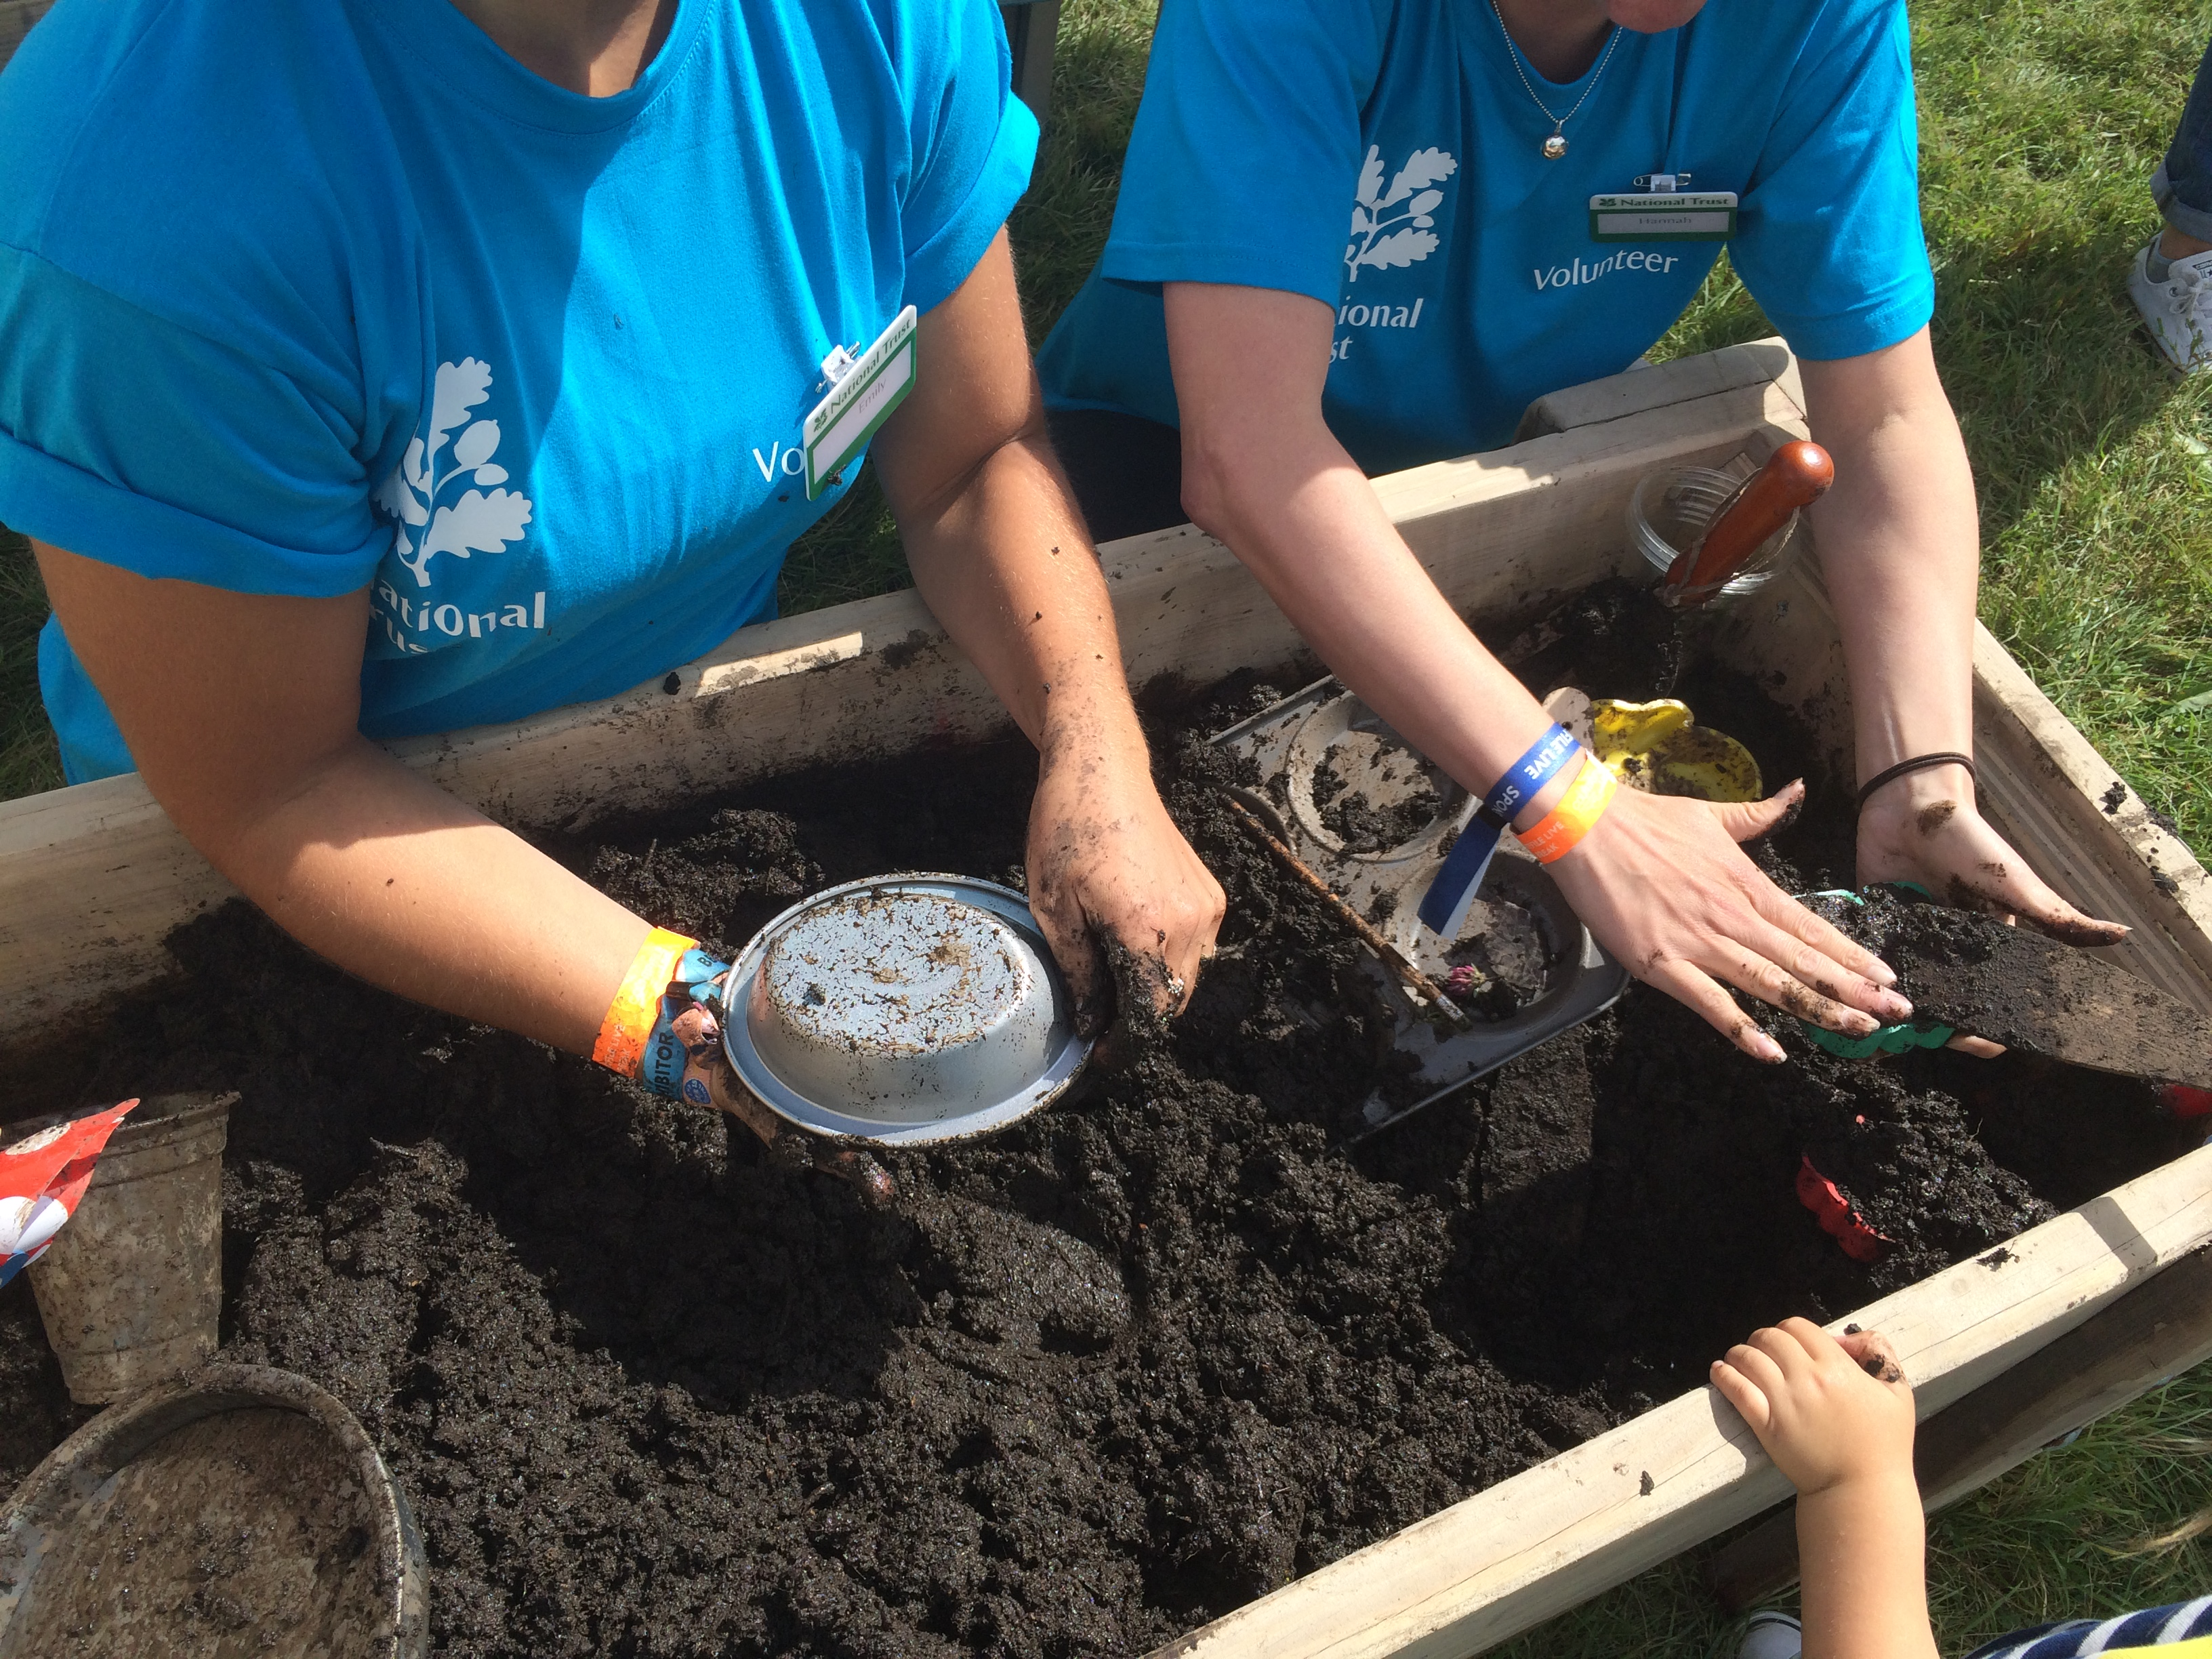 Volunteers playing in the mud pie pit